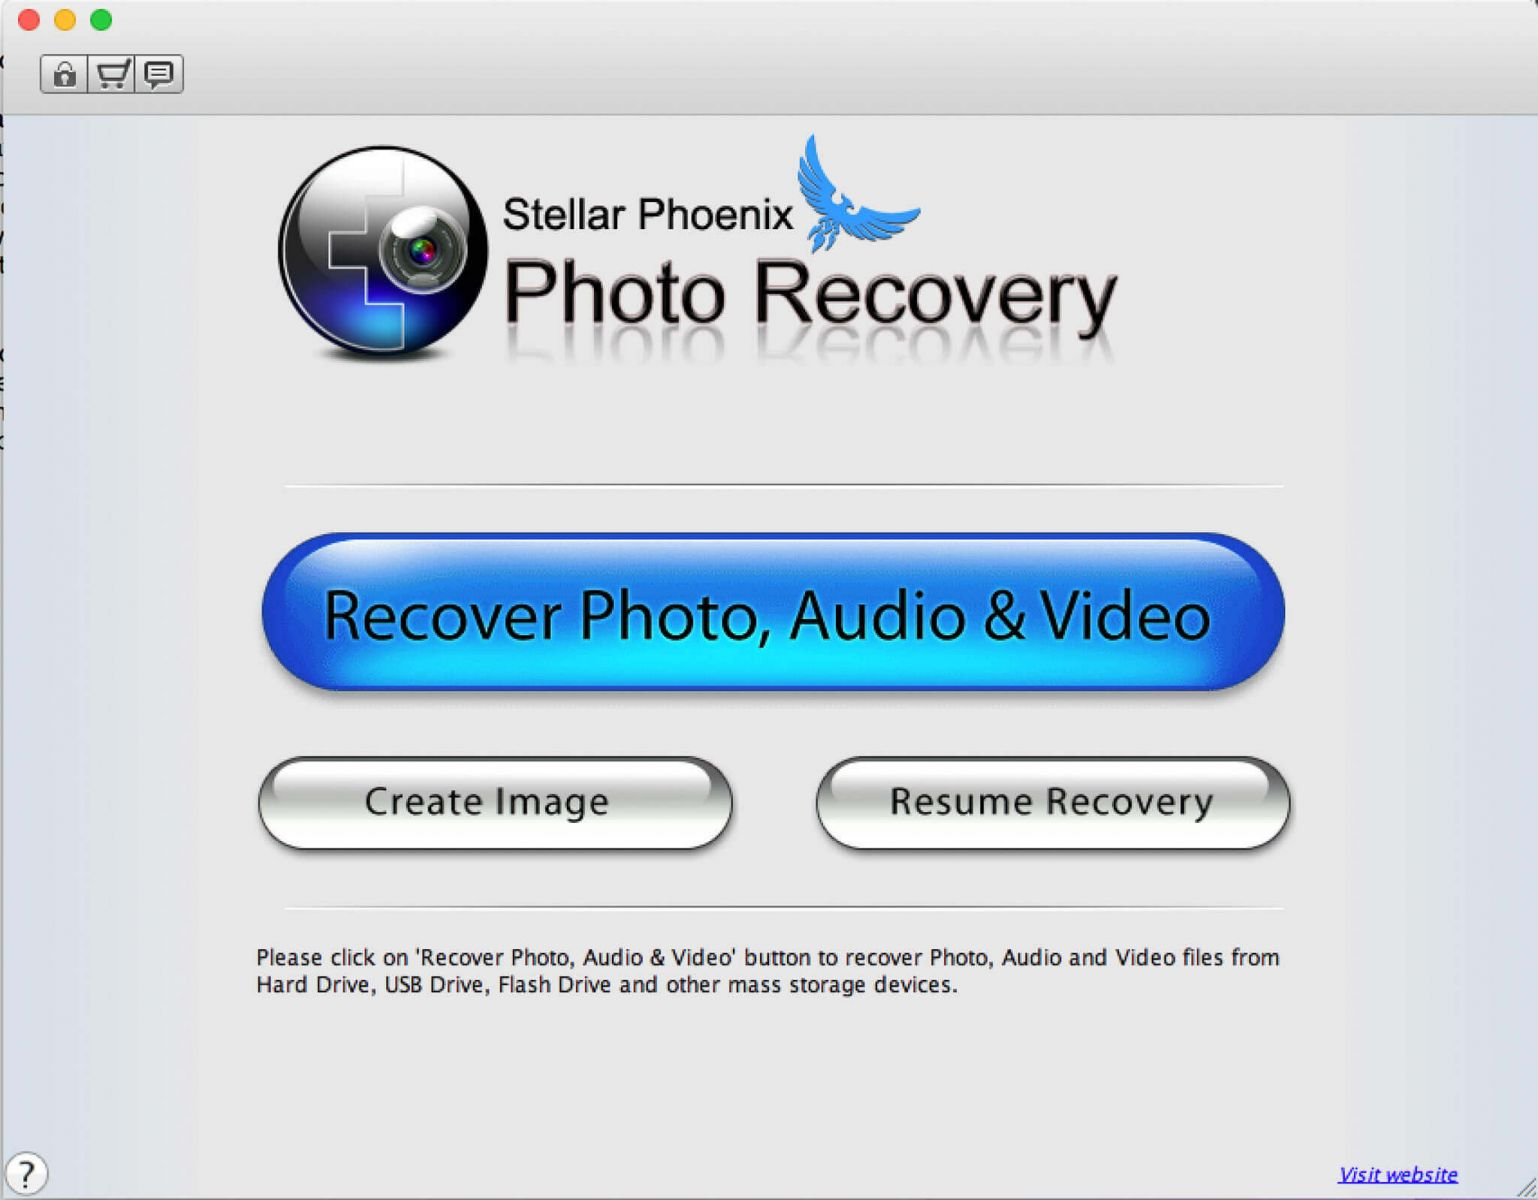 Stellar Phoenix Photo Recovery interface